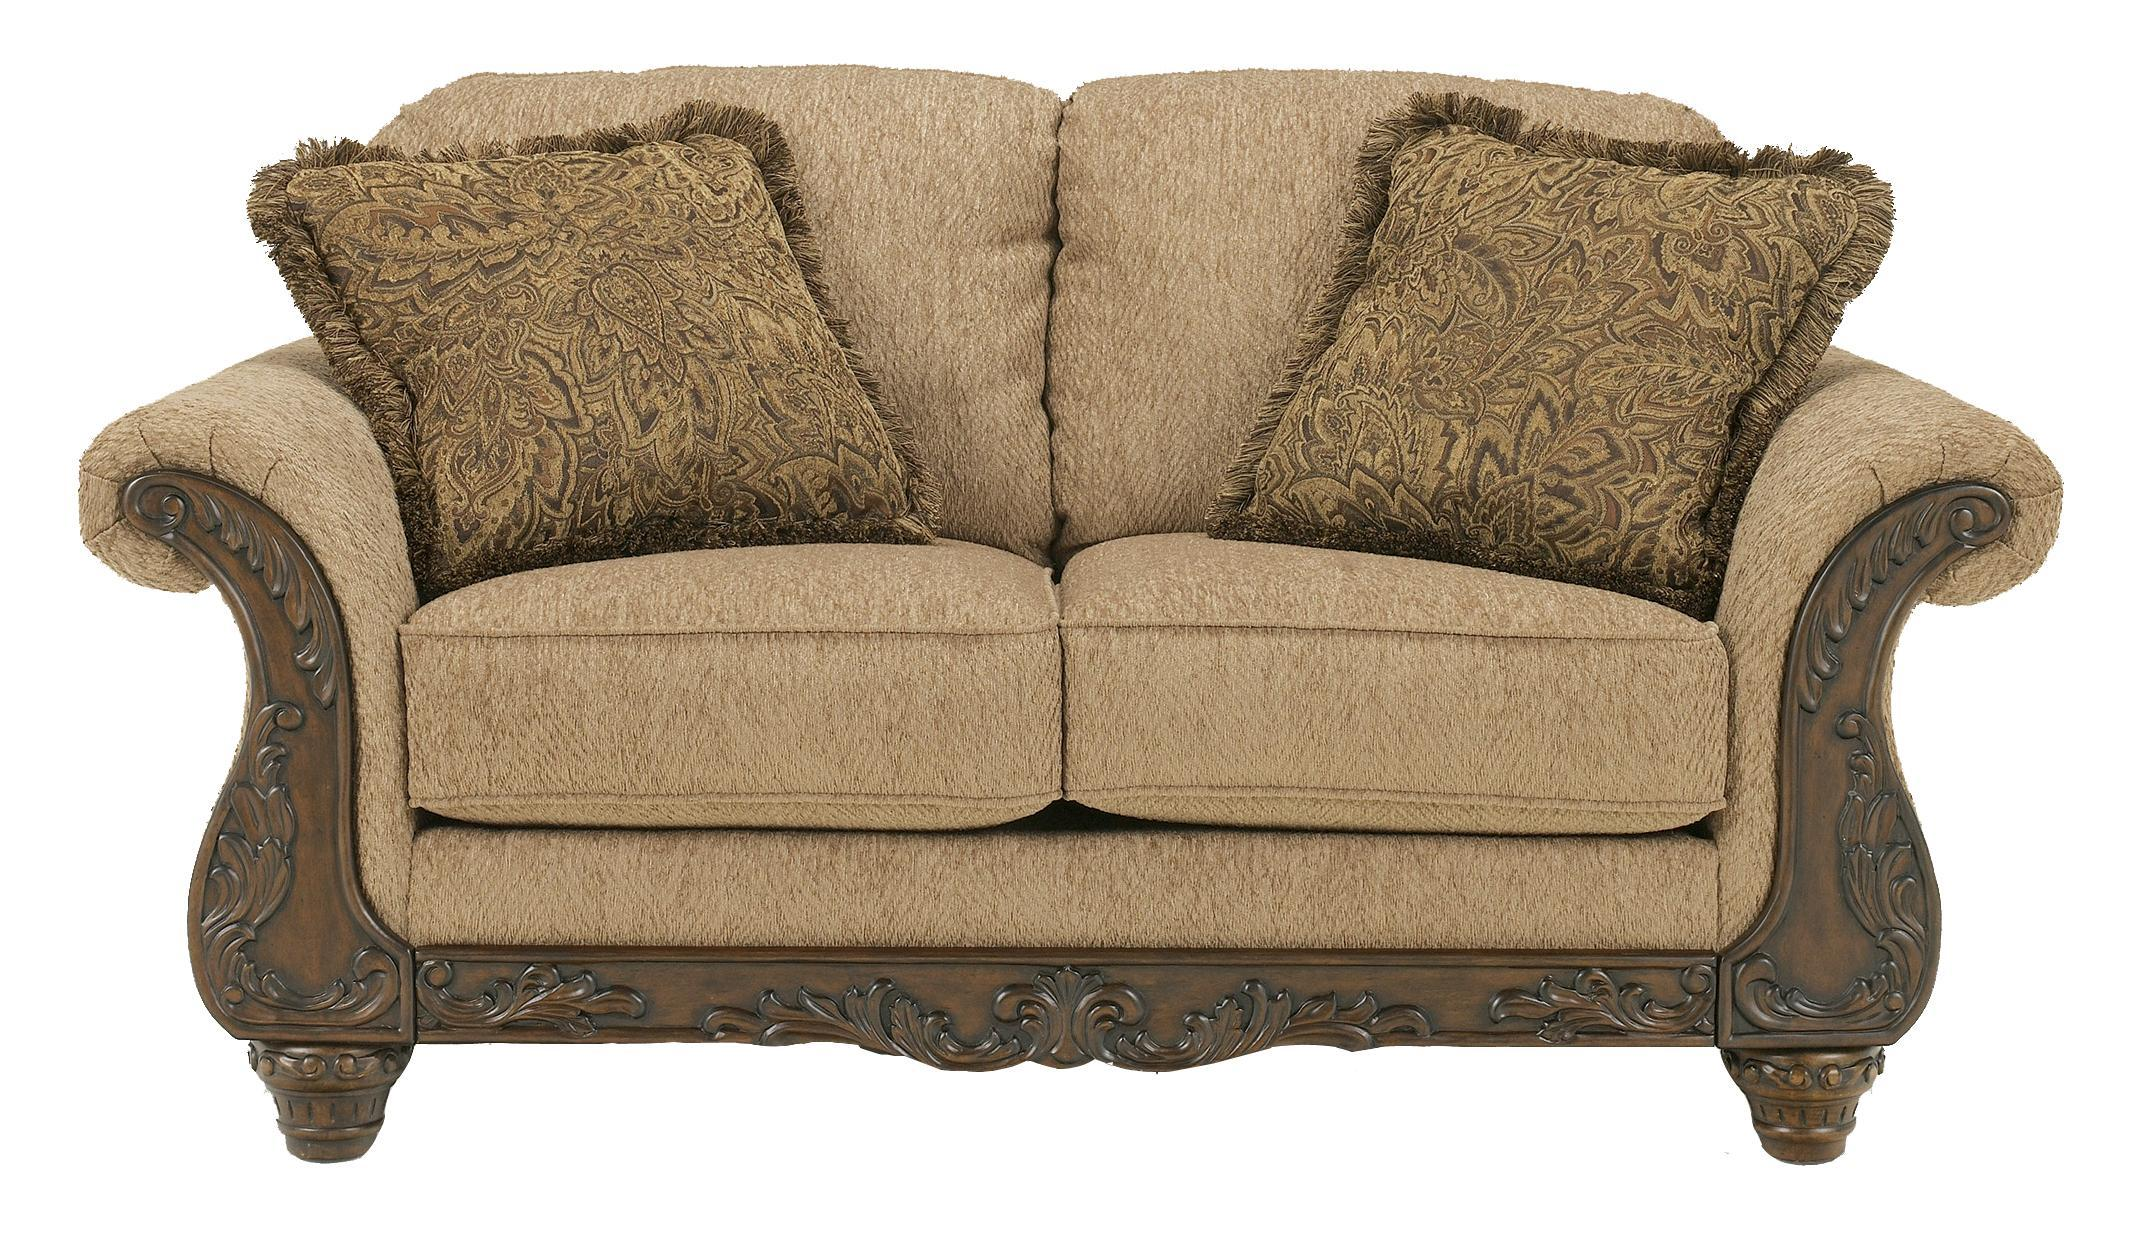 Signature Design by Ashley Cambridge - Amber Loveseat - Item Number: 3940135